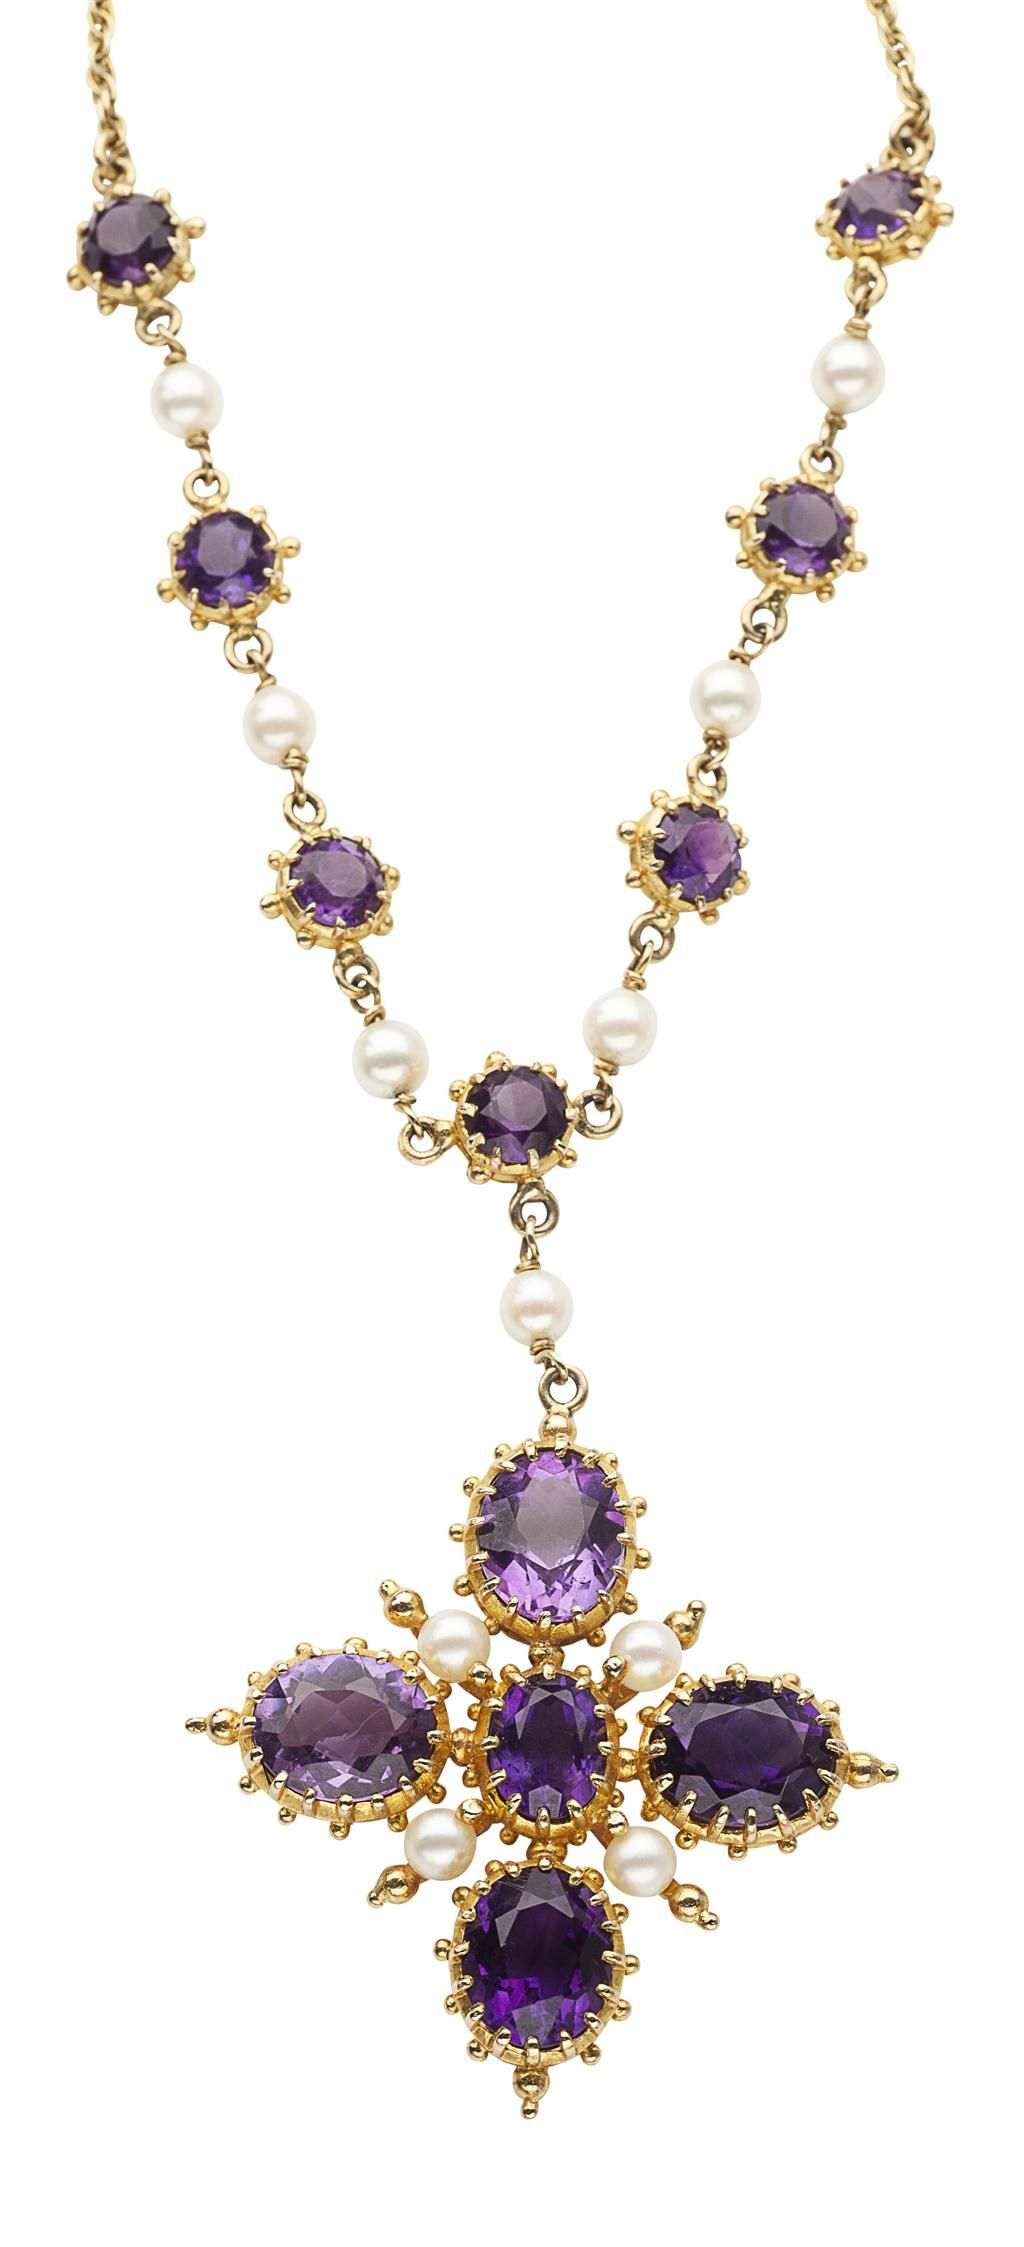 A ct gold amethyst and pearl pendant necklace in the renaissance